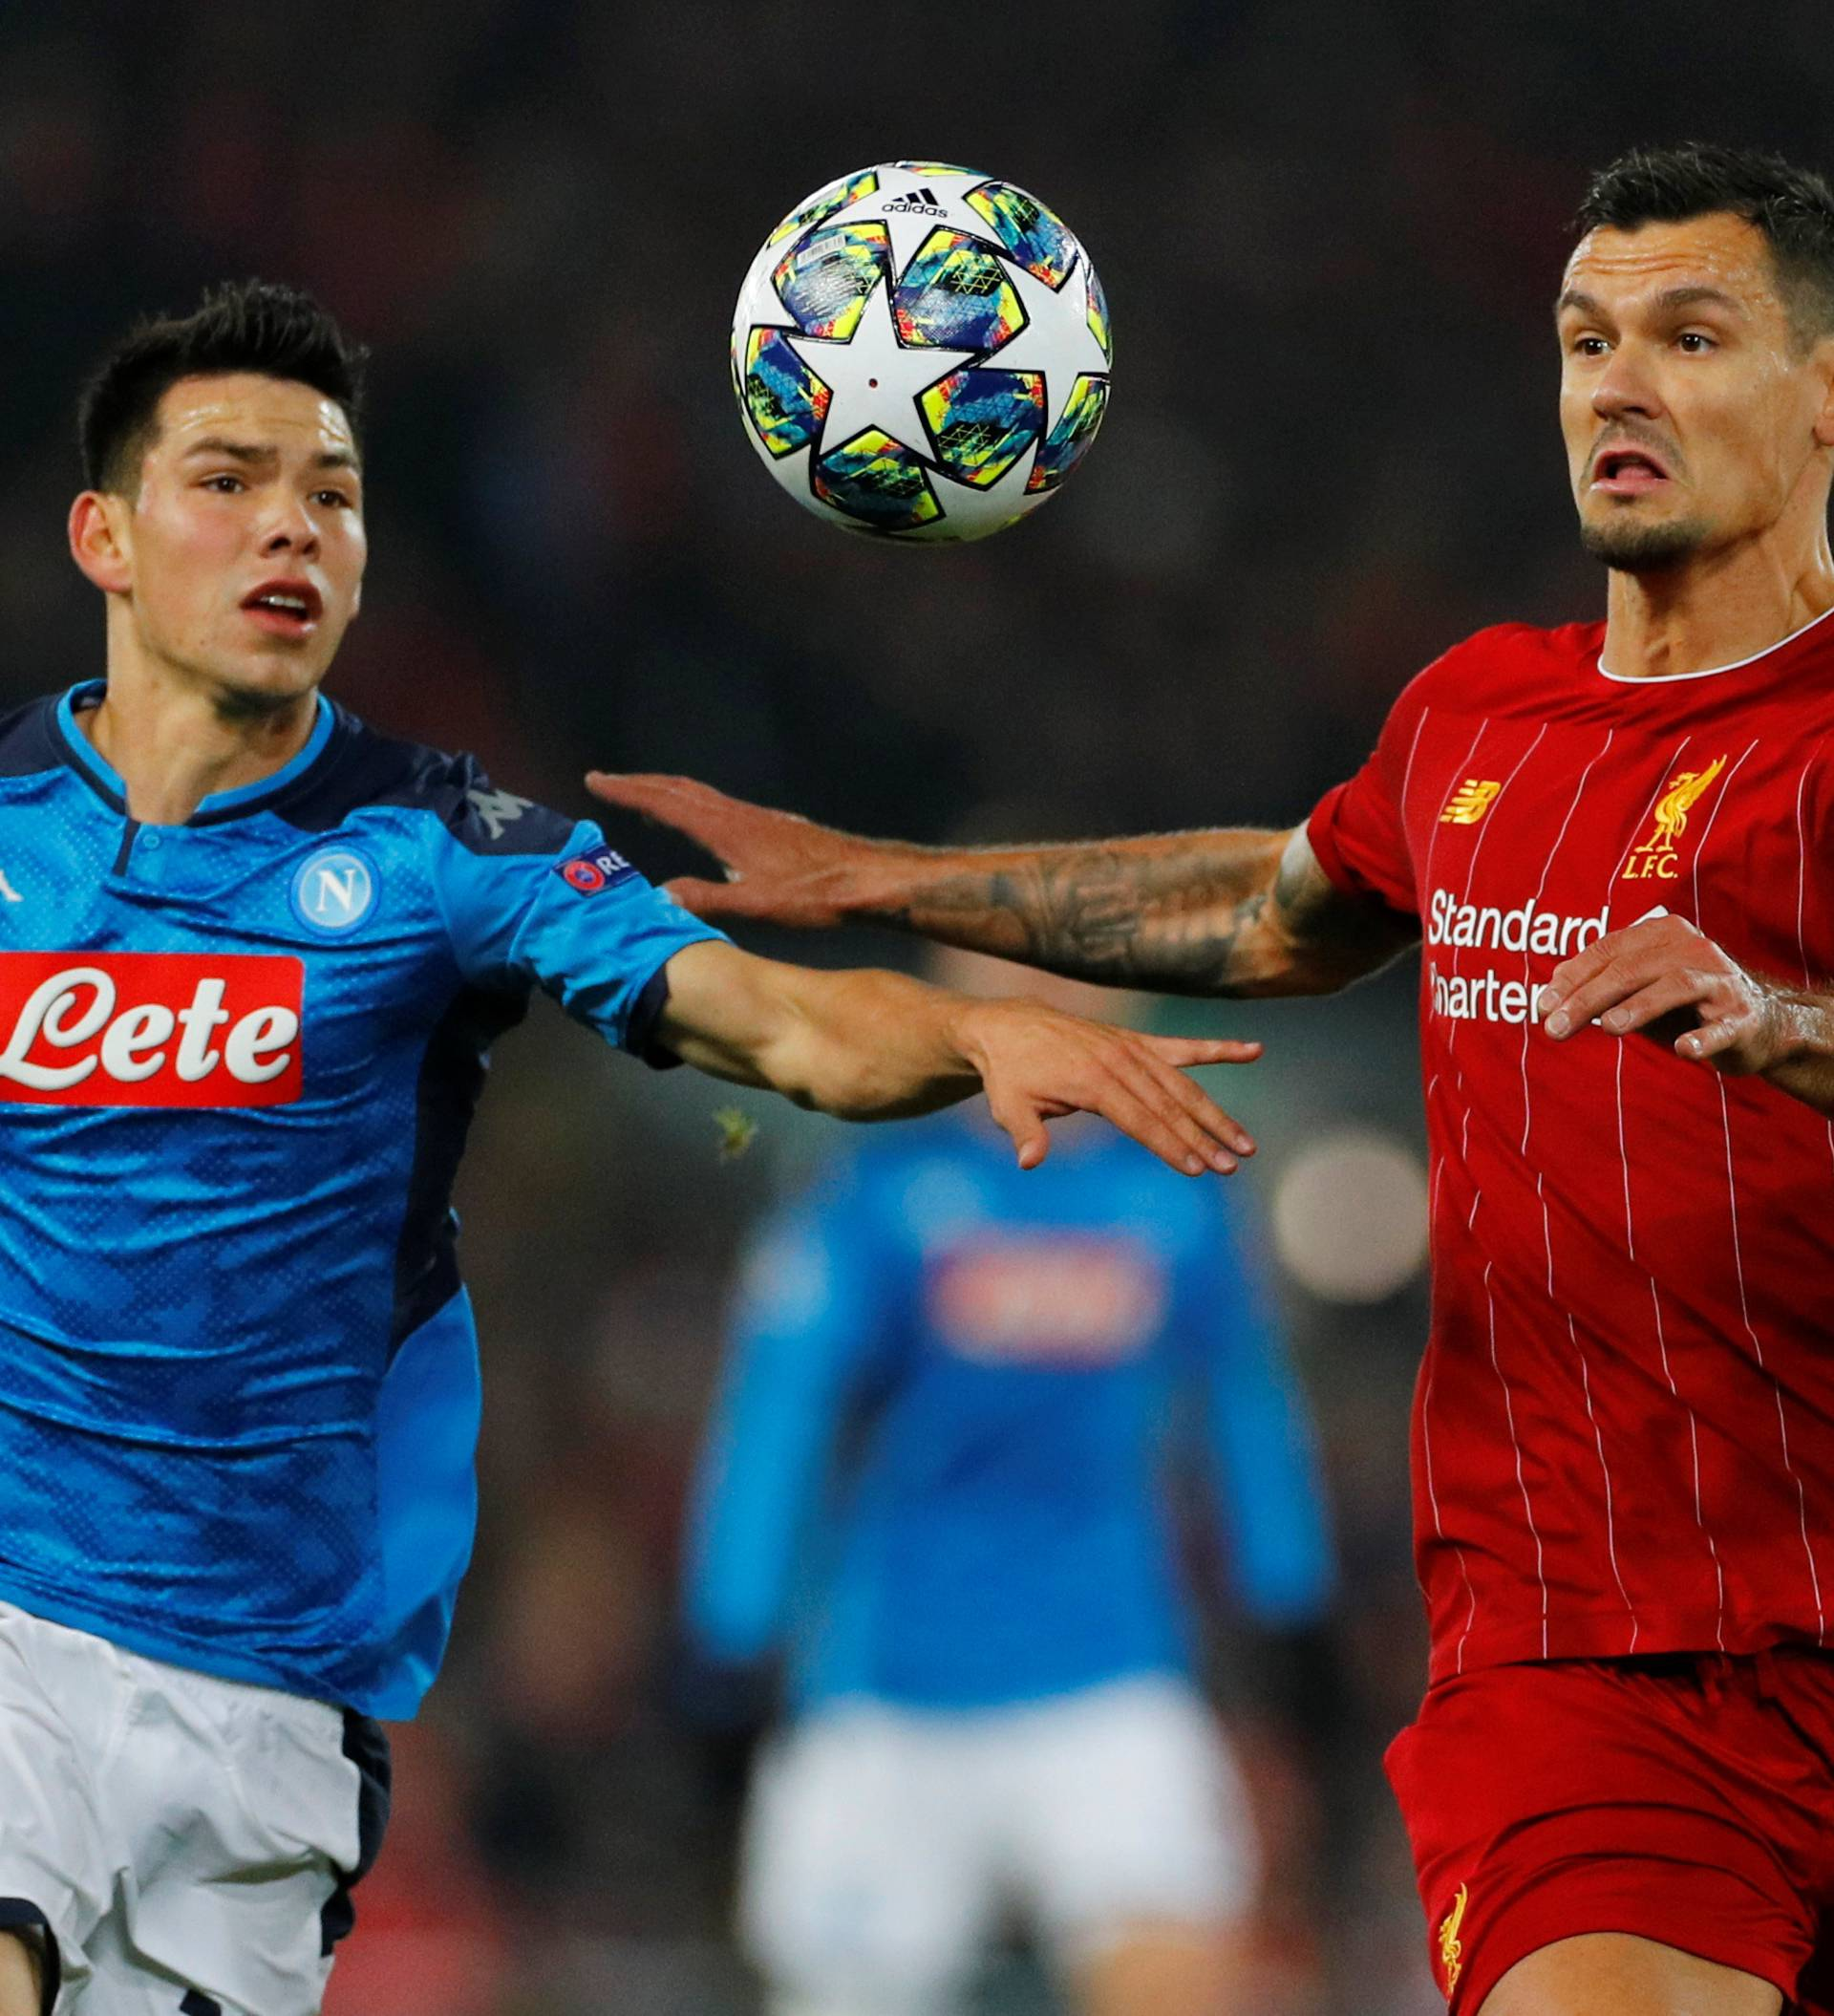 Champions League - Group E - Liverpool v Napoli